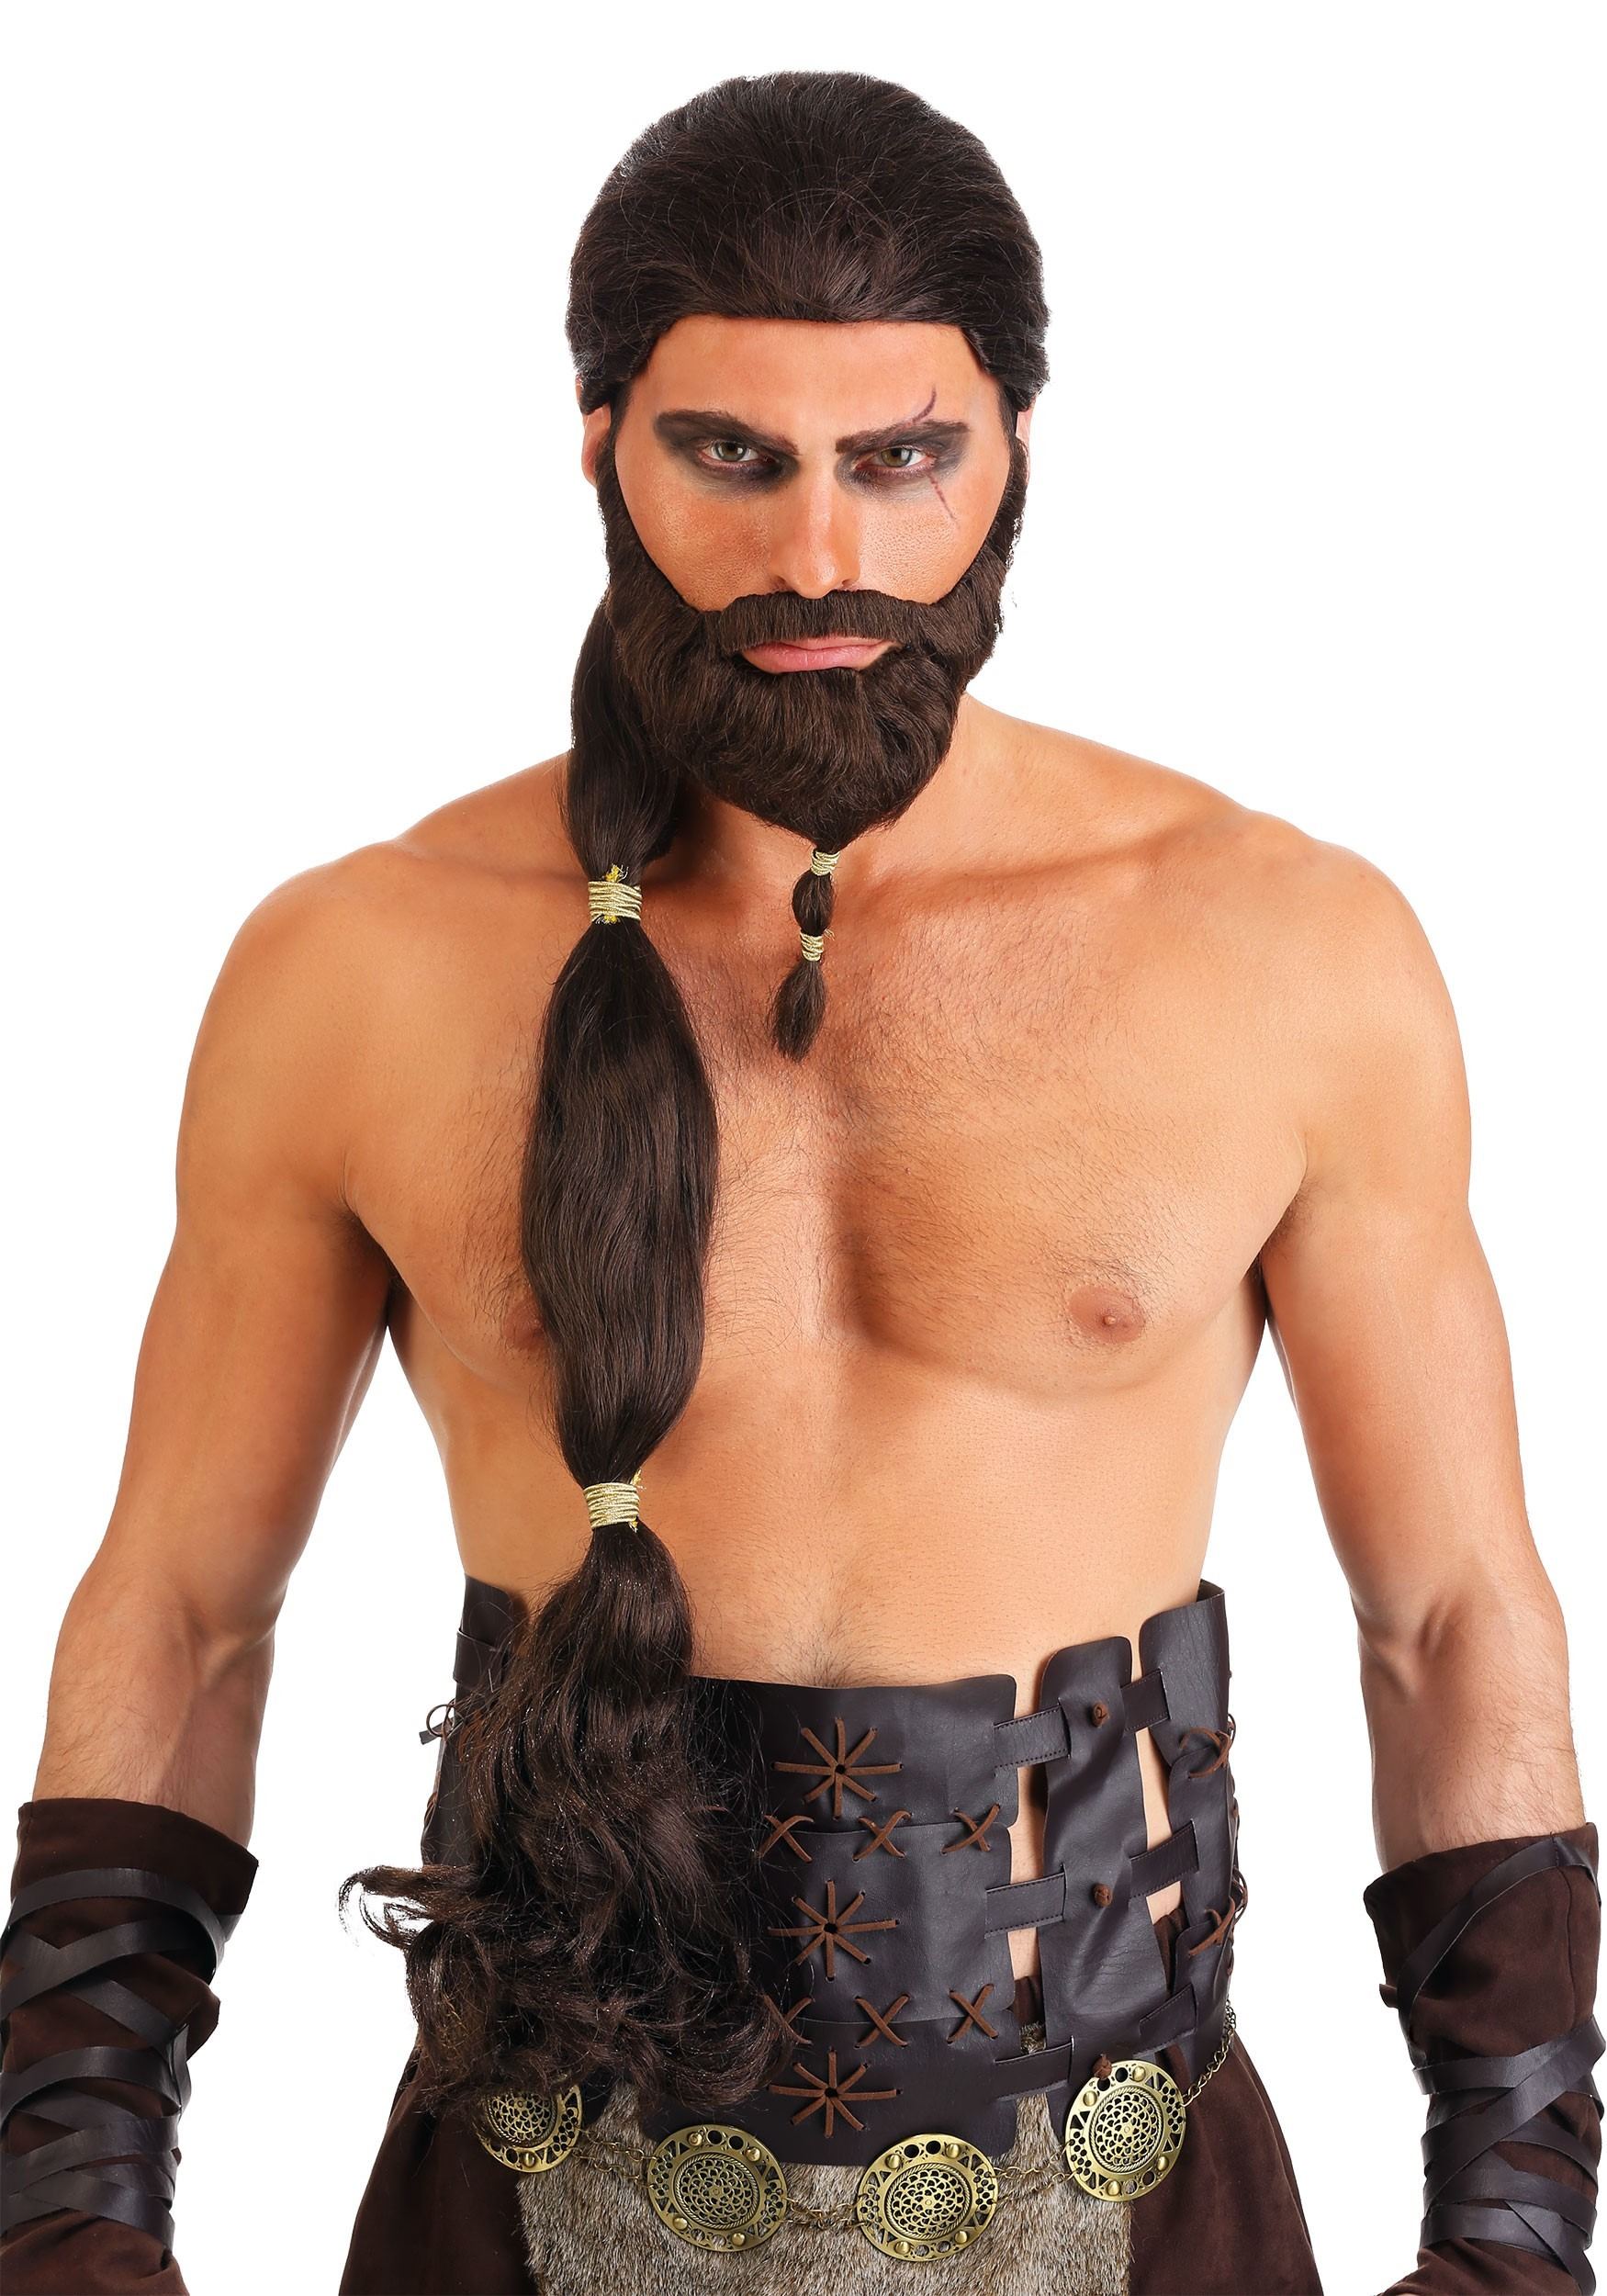 King Warrior Wig and Beard